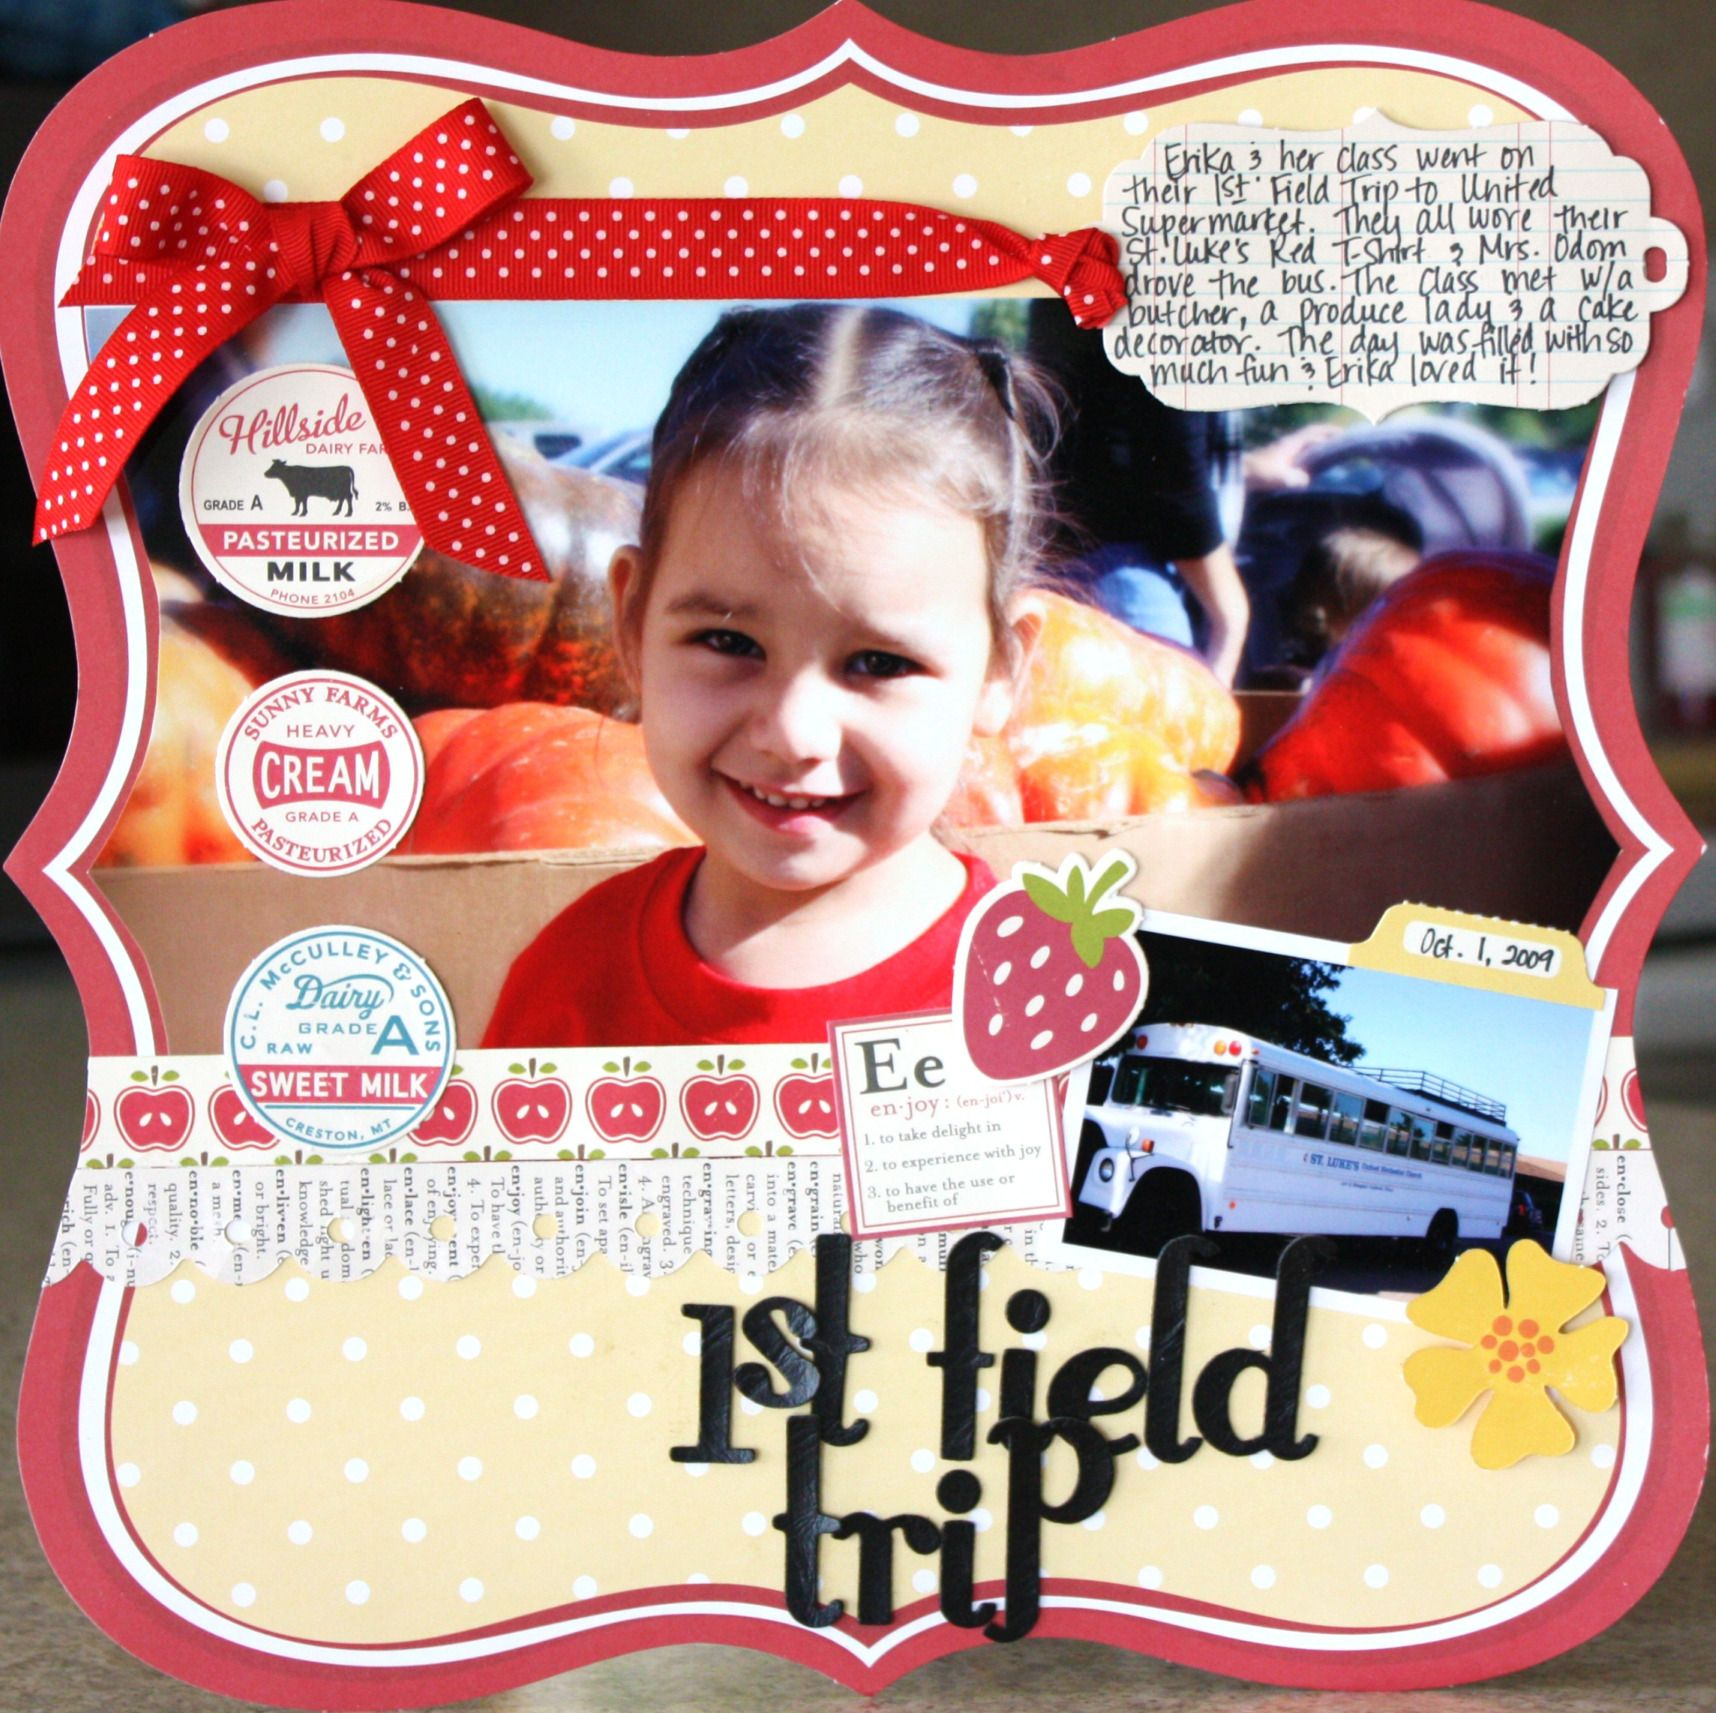 Scrapbook ideas school - A Lo Of My Daughter S Field Trip July Creative Kit From My Creative Scrapbook